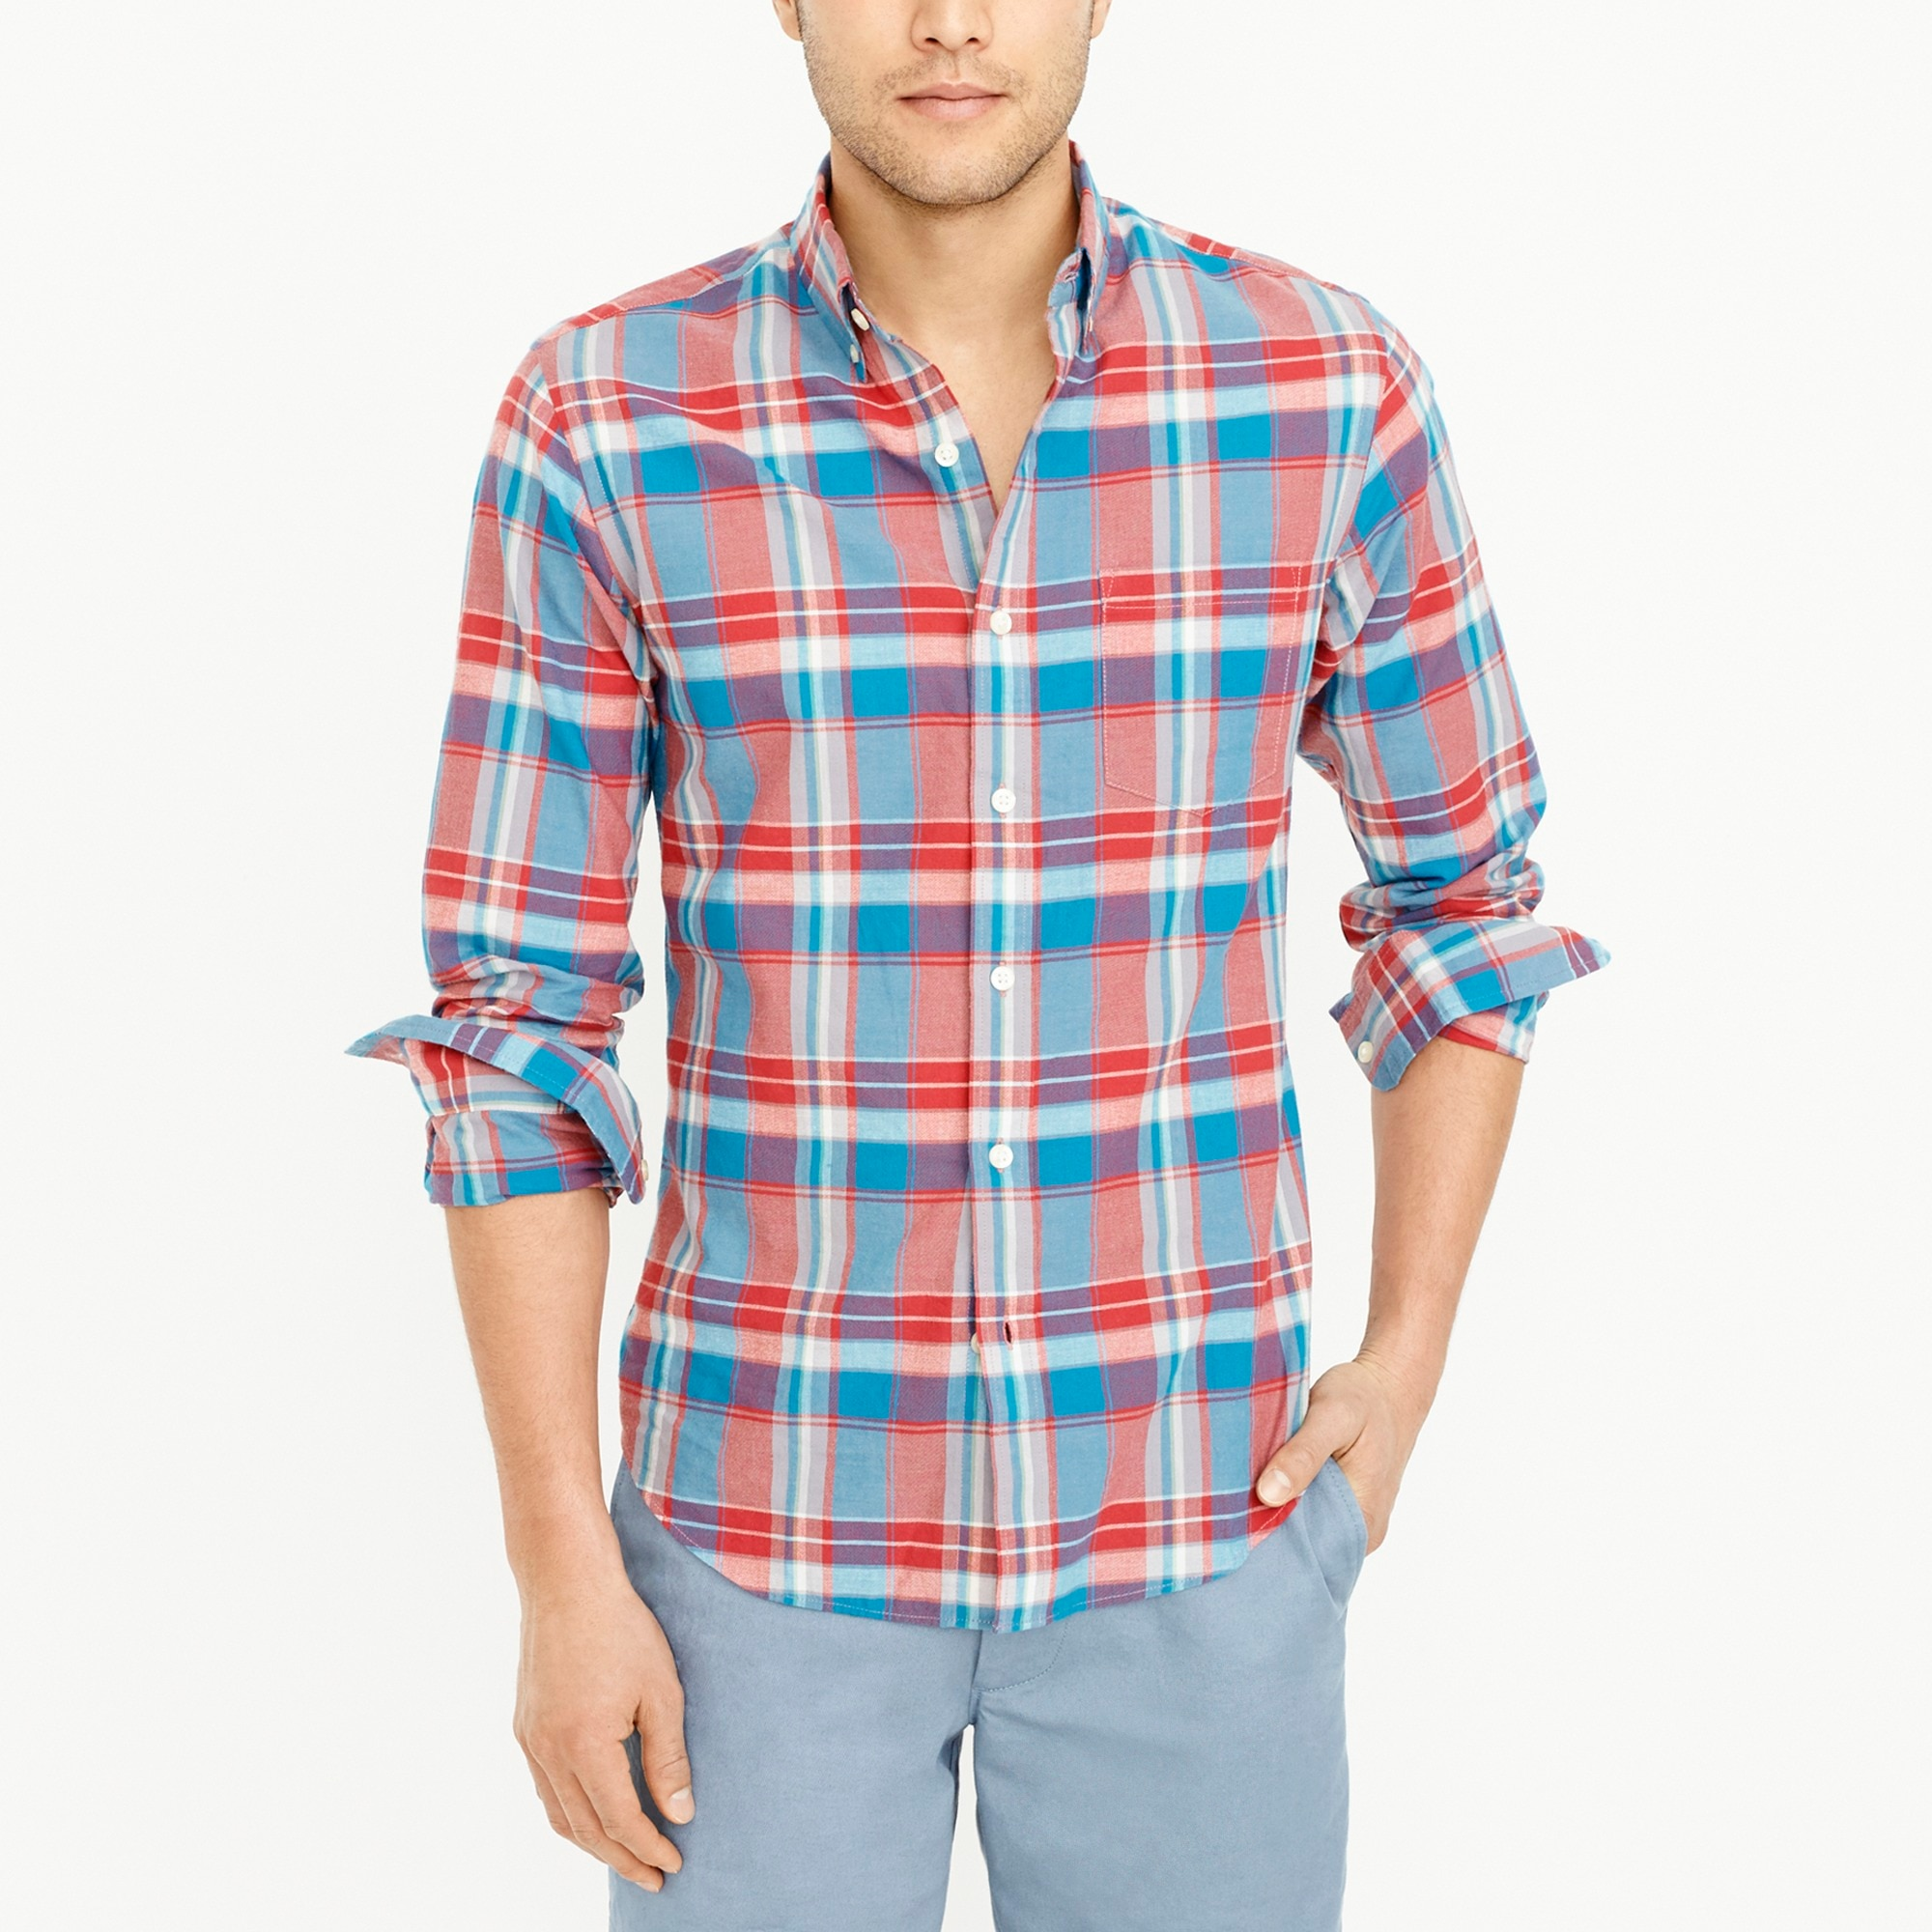 Image 1 for Slim madras shirt